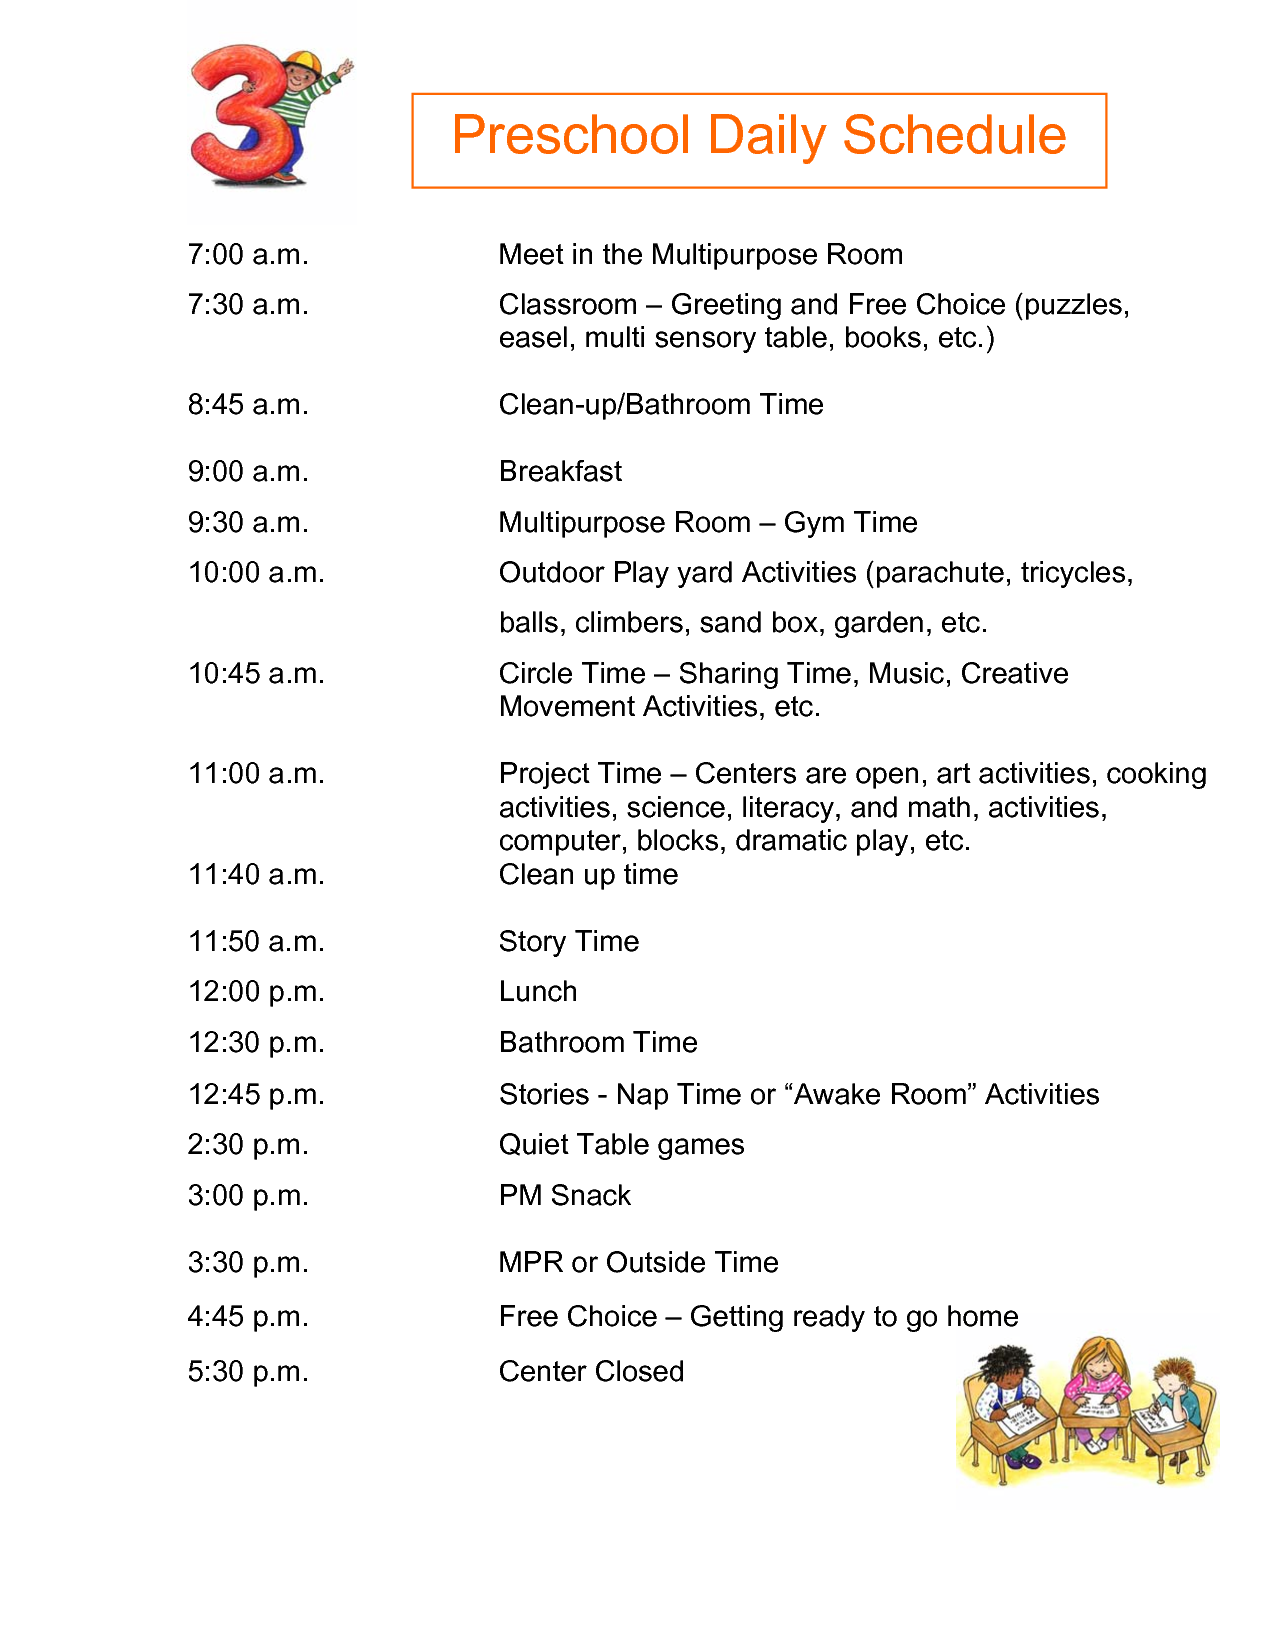 preschool daily schedules half day preschool daily schedule submited images 437